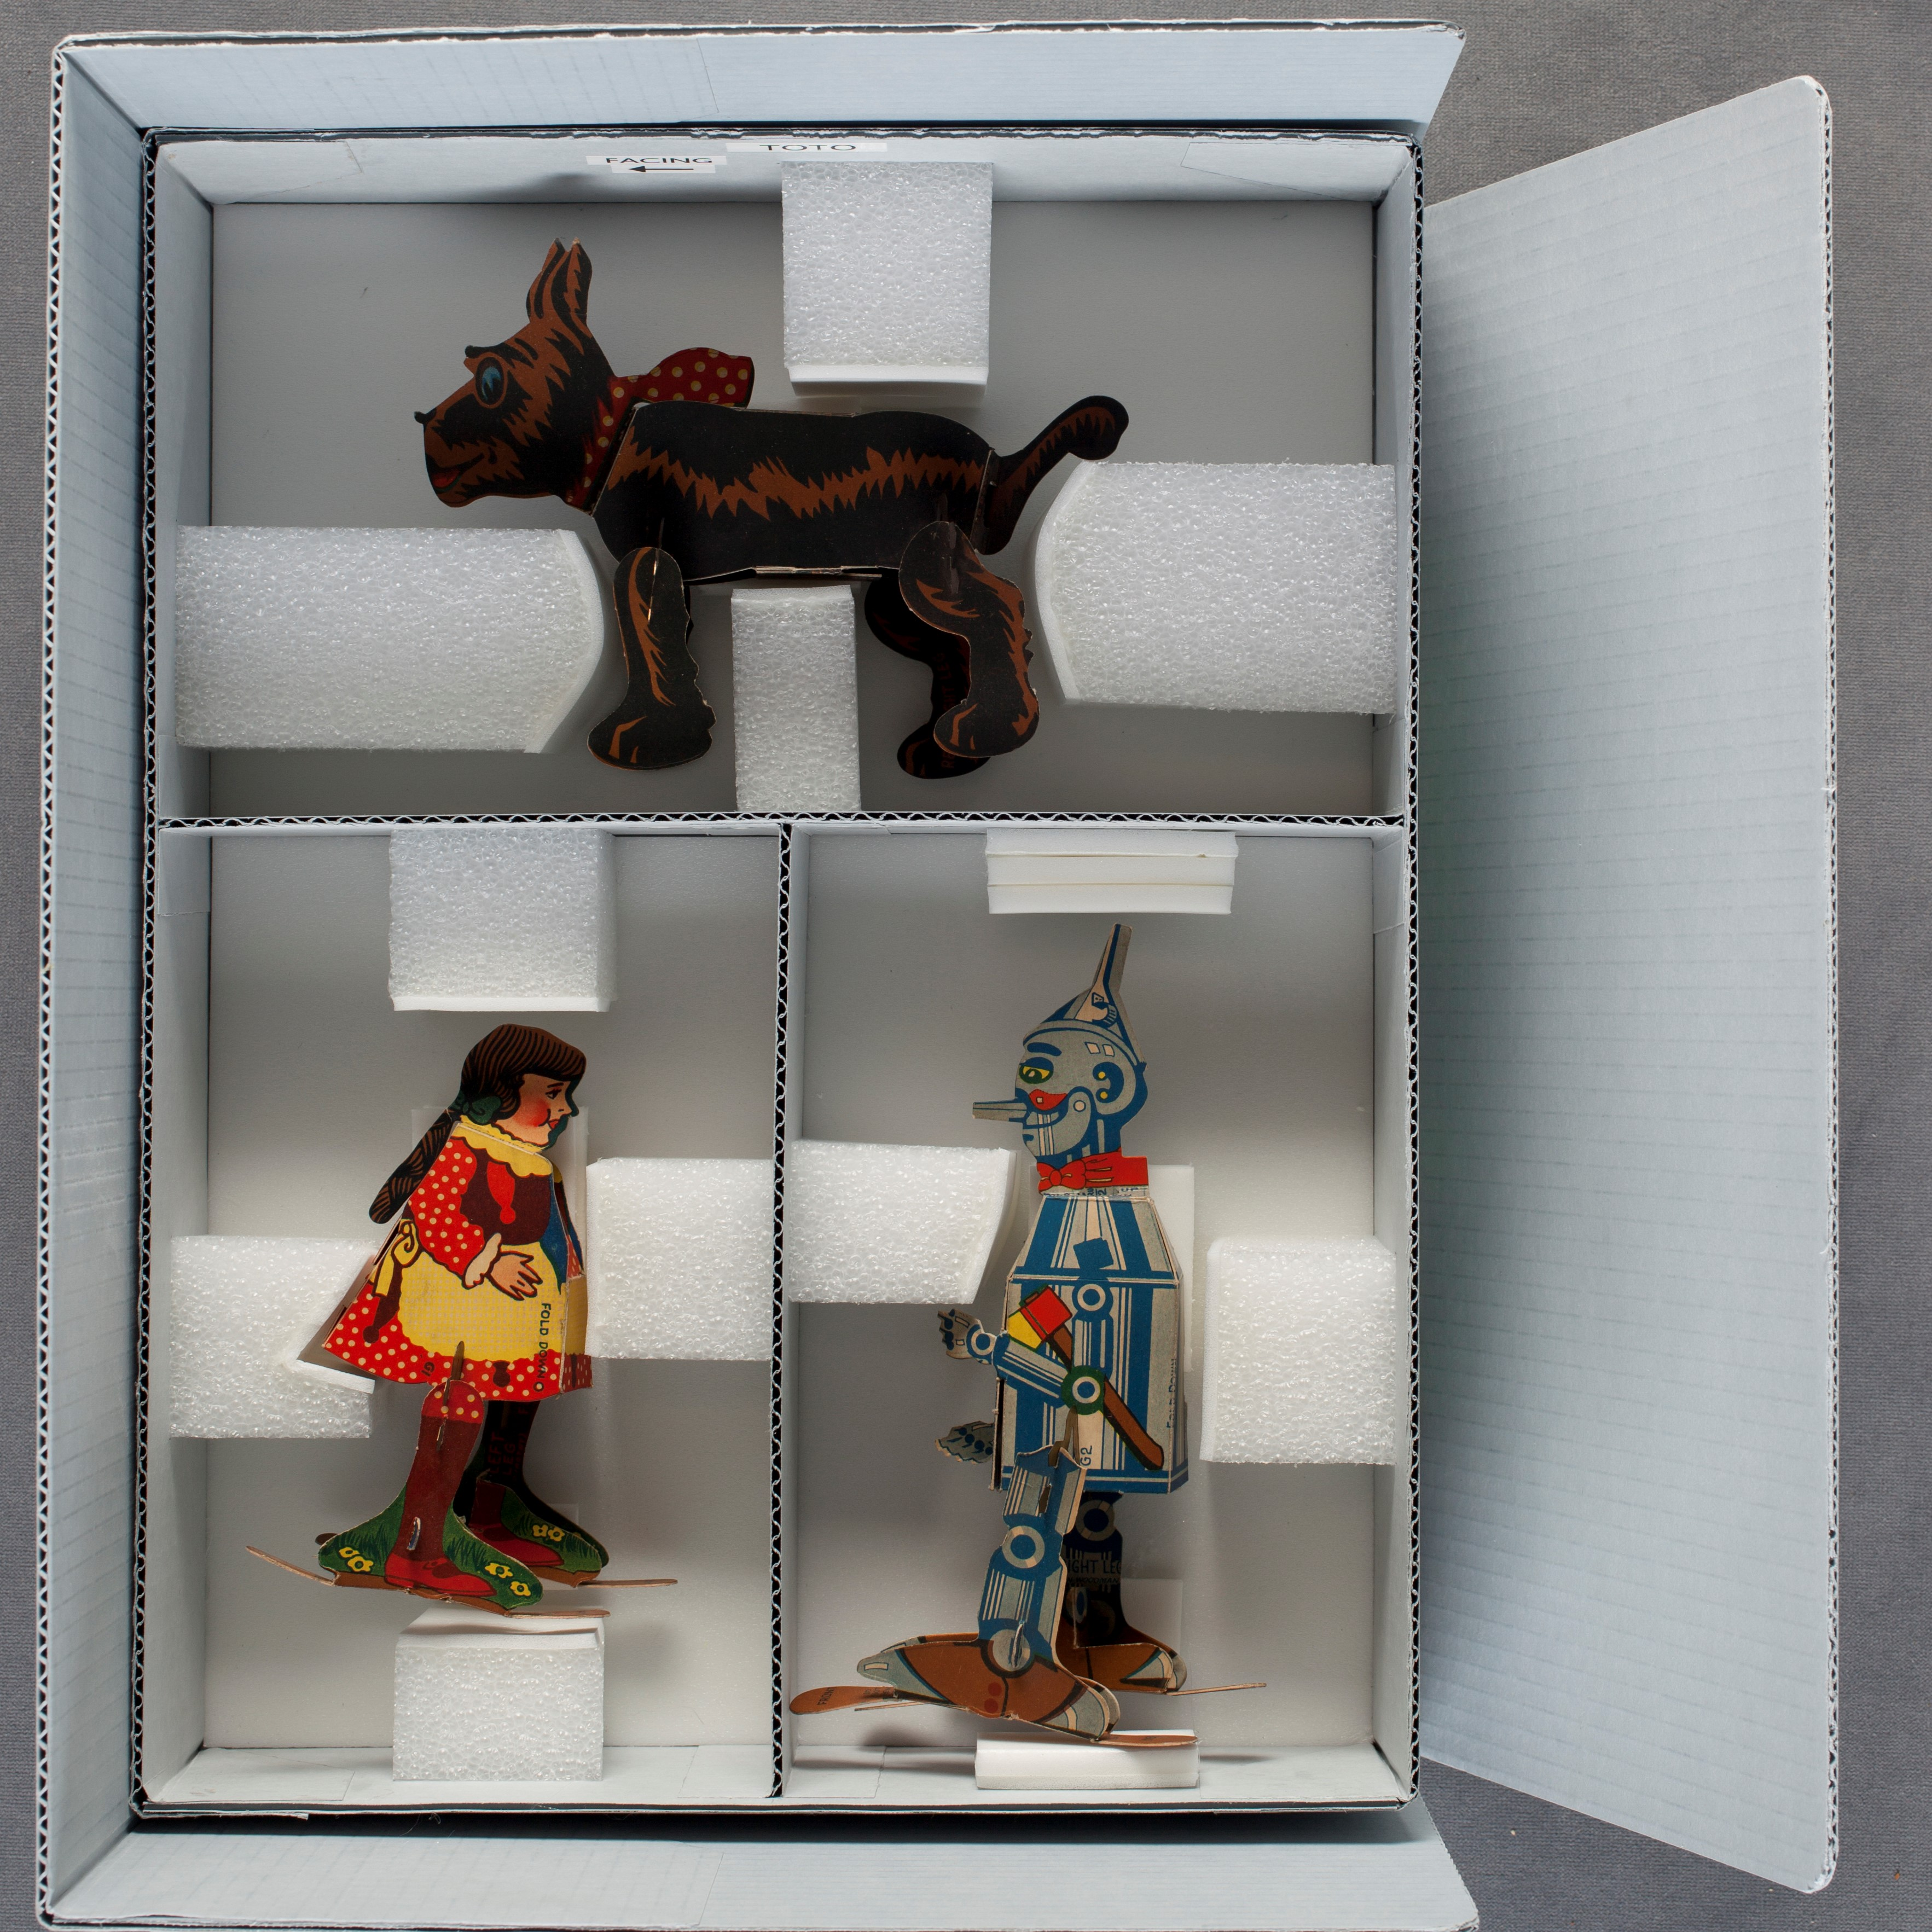 Box it! Housing Options for Collections